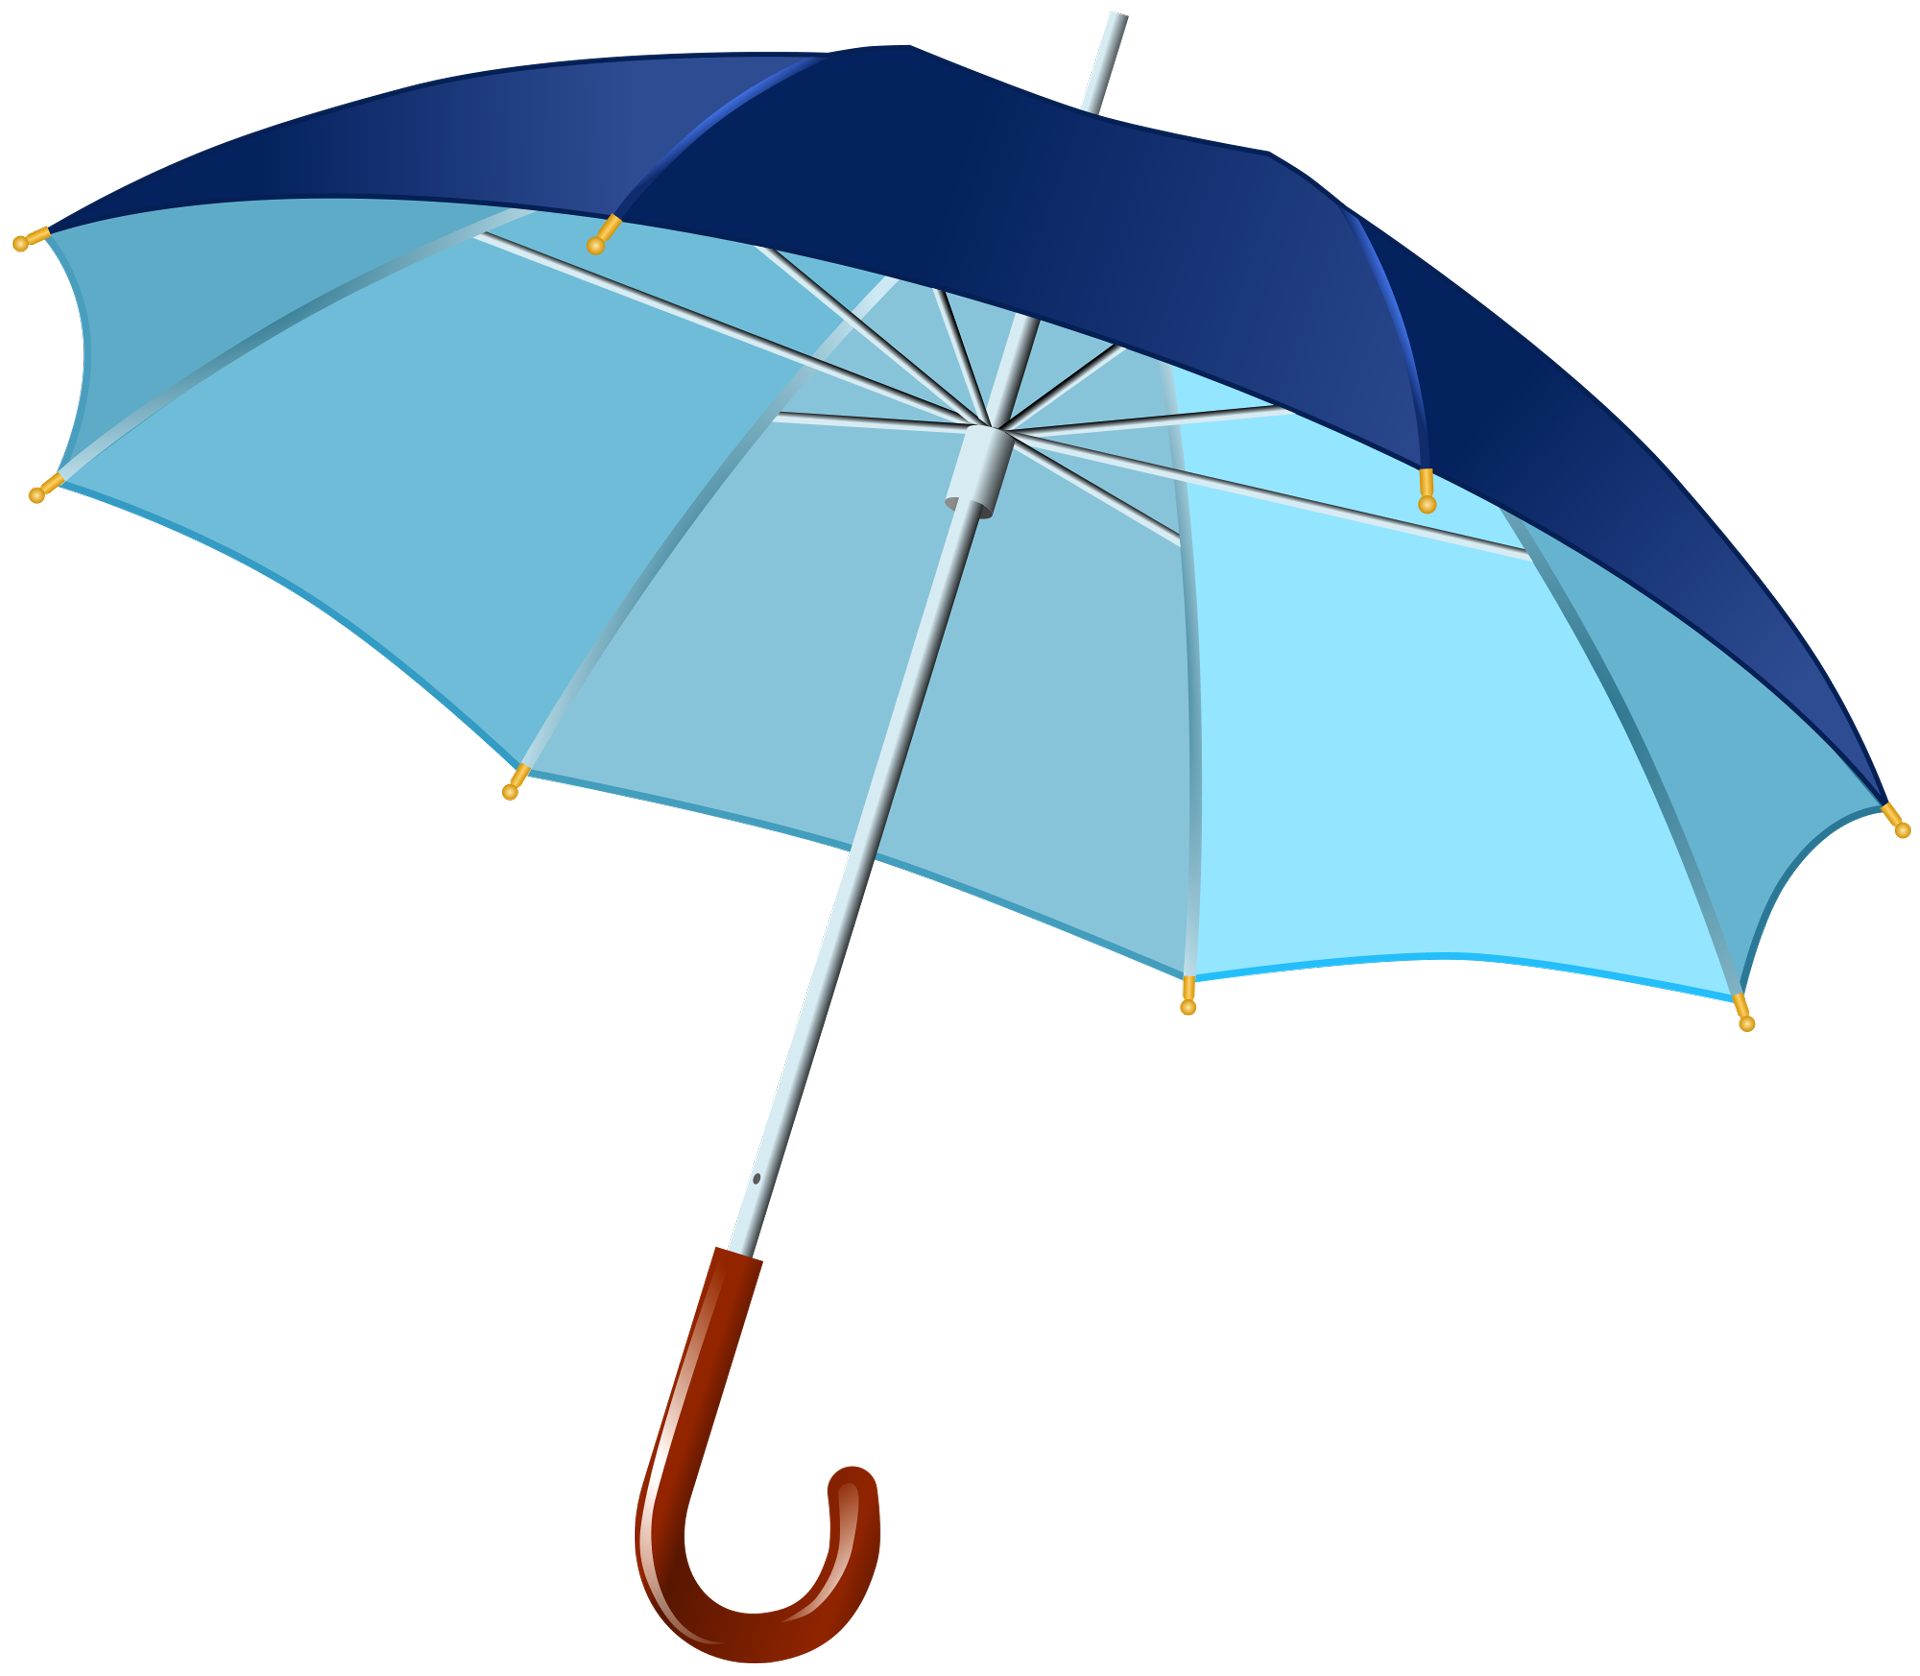 umbrella_PNG69211.png